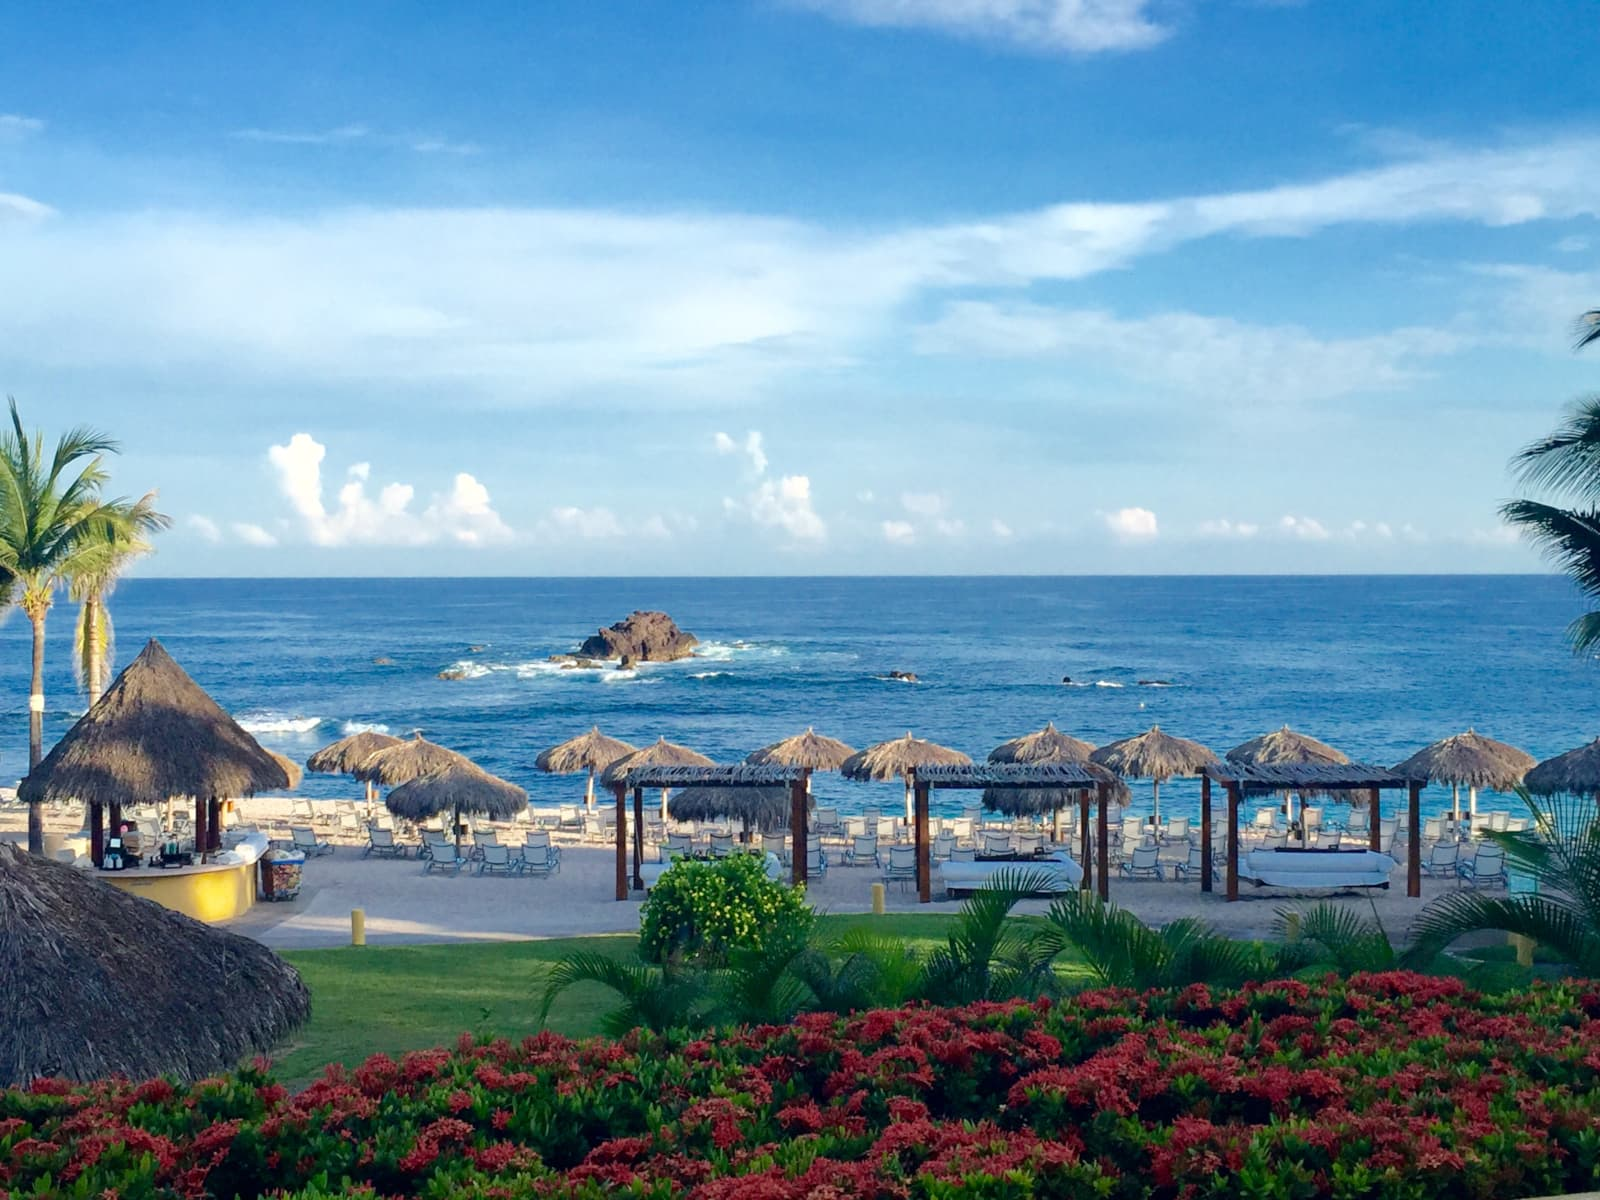 The Four Seasons Resort Punta Mita - one of the best tennis resorts for your tennis holidays in Mexico